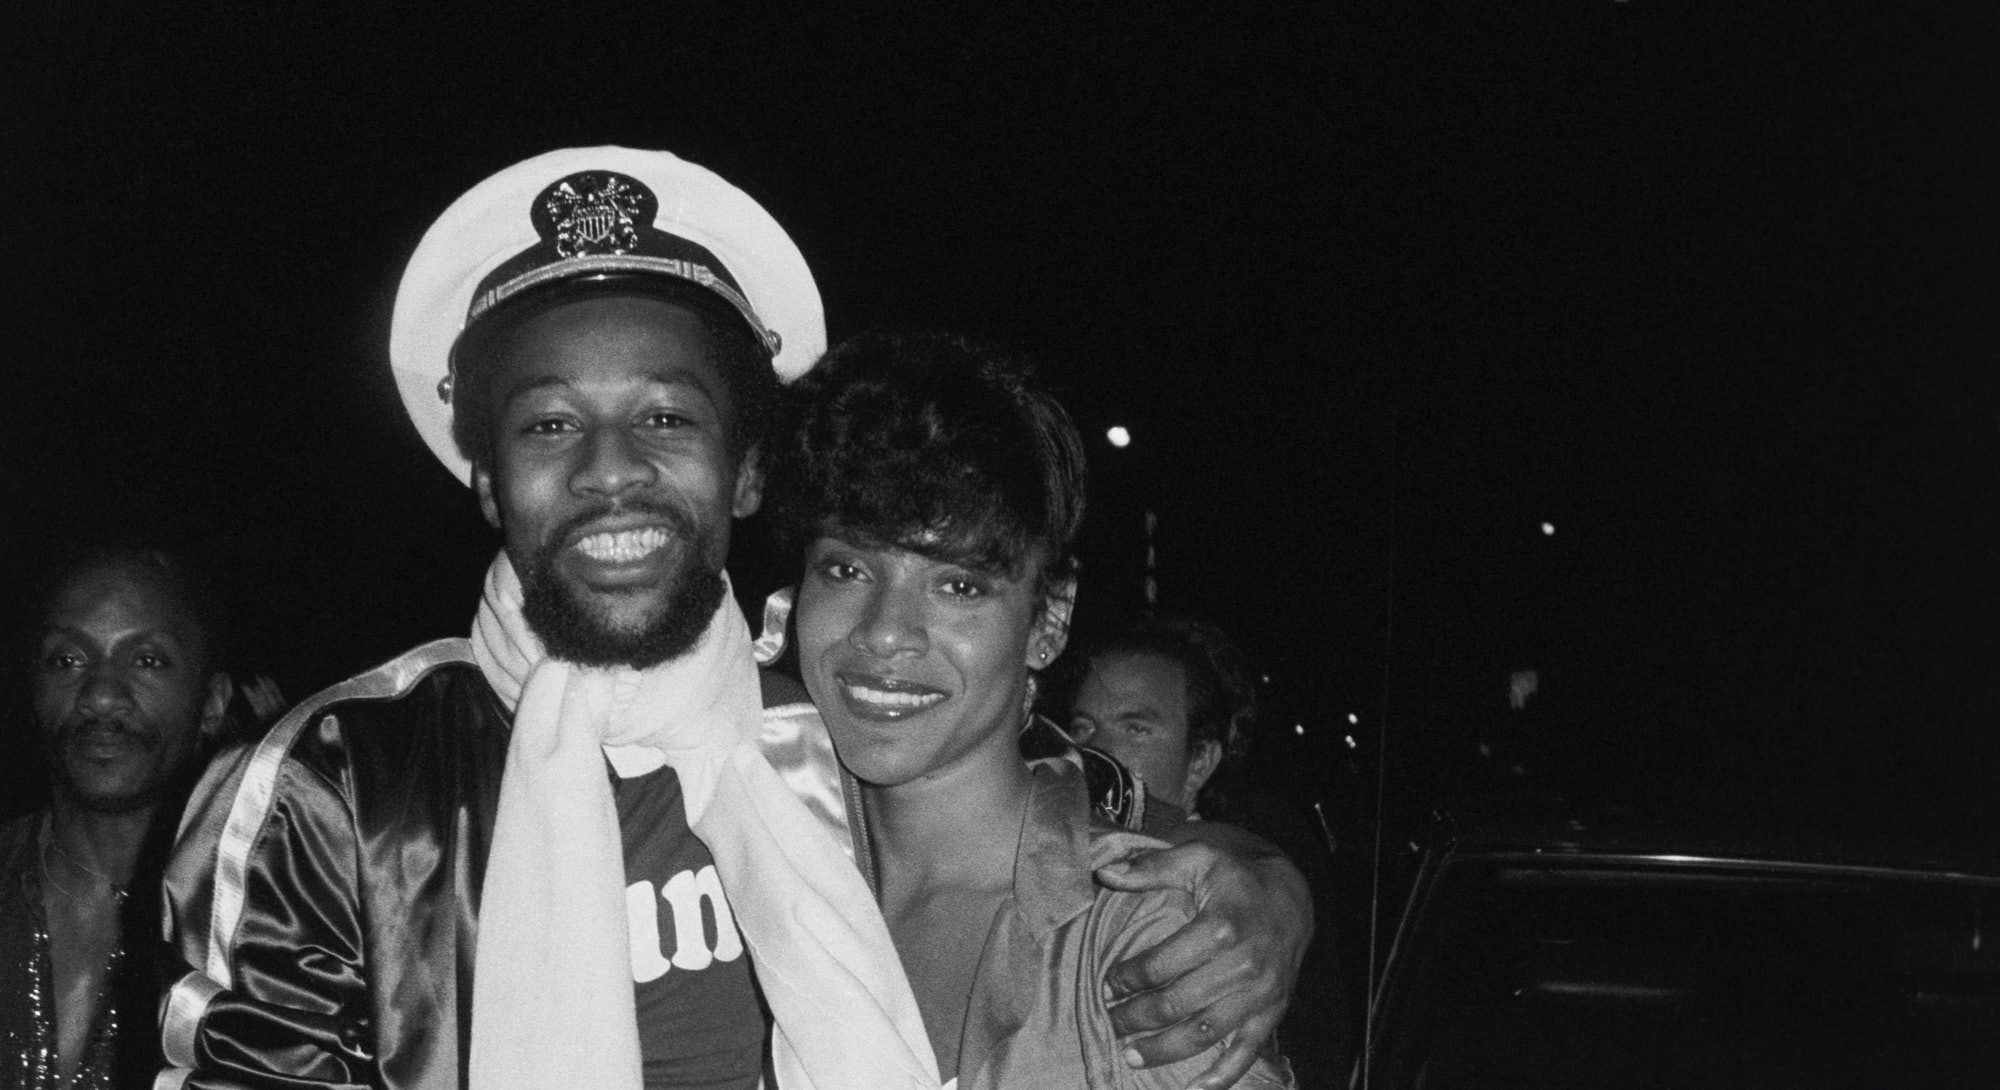 Phylicia Rashad and former husband, The Village People singer Victor Willis